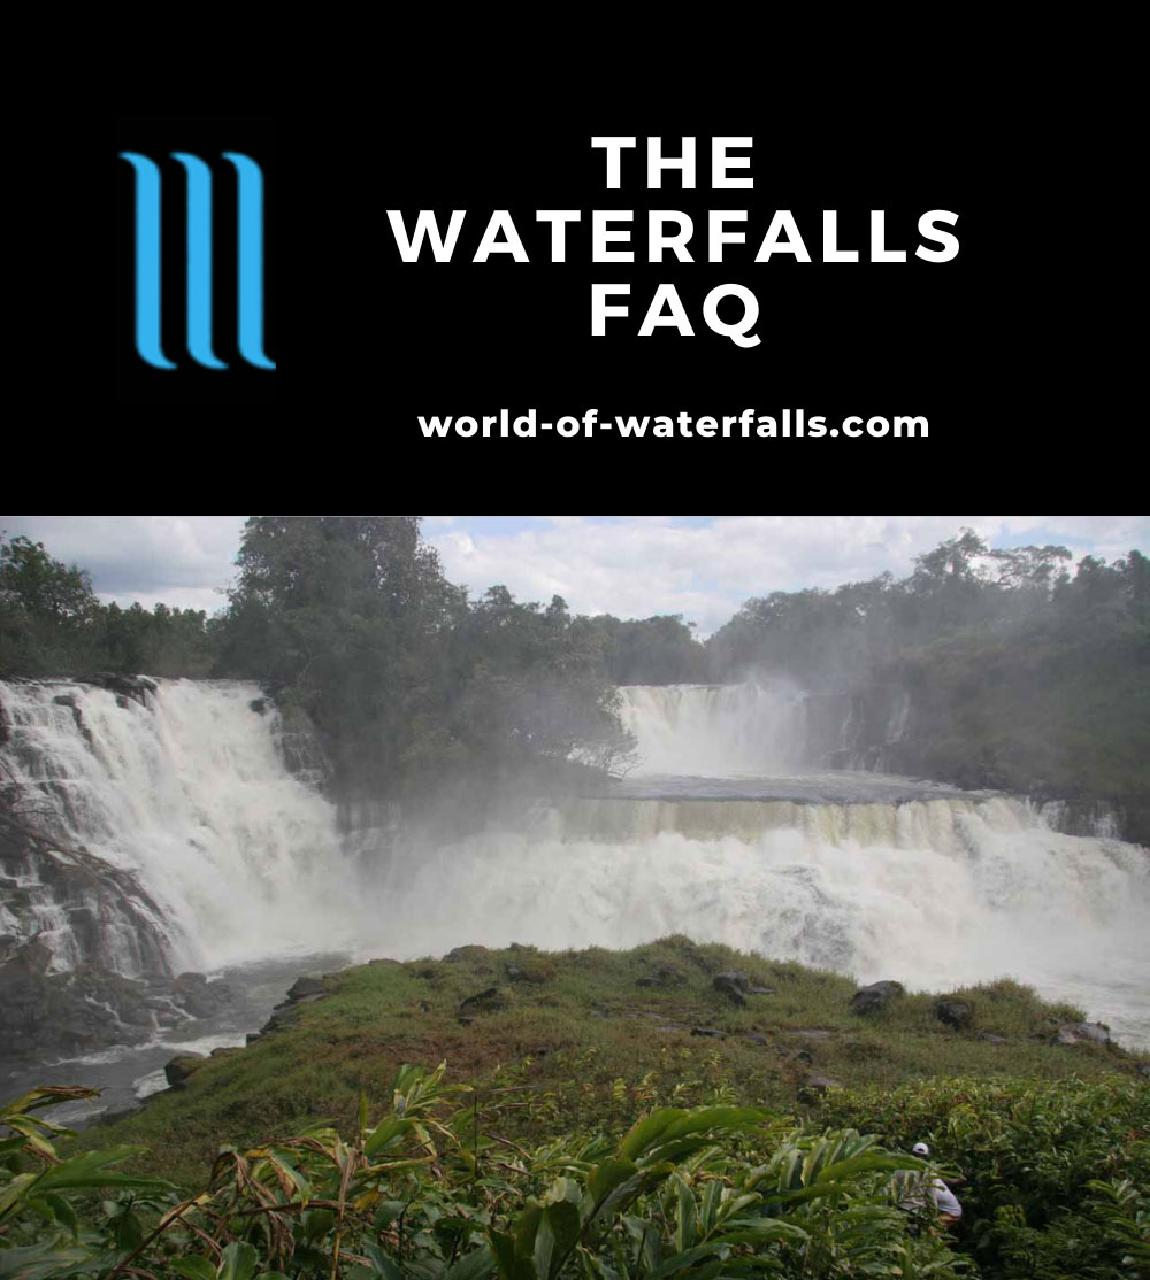 The Waterfalls FAQ